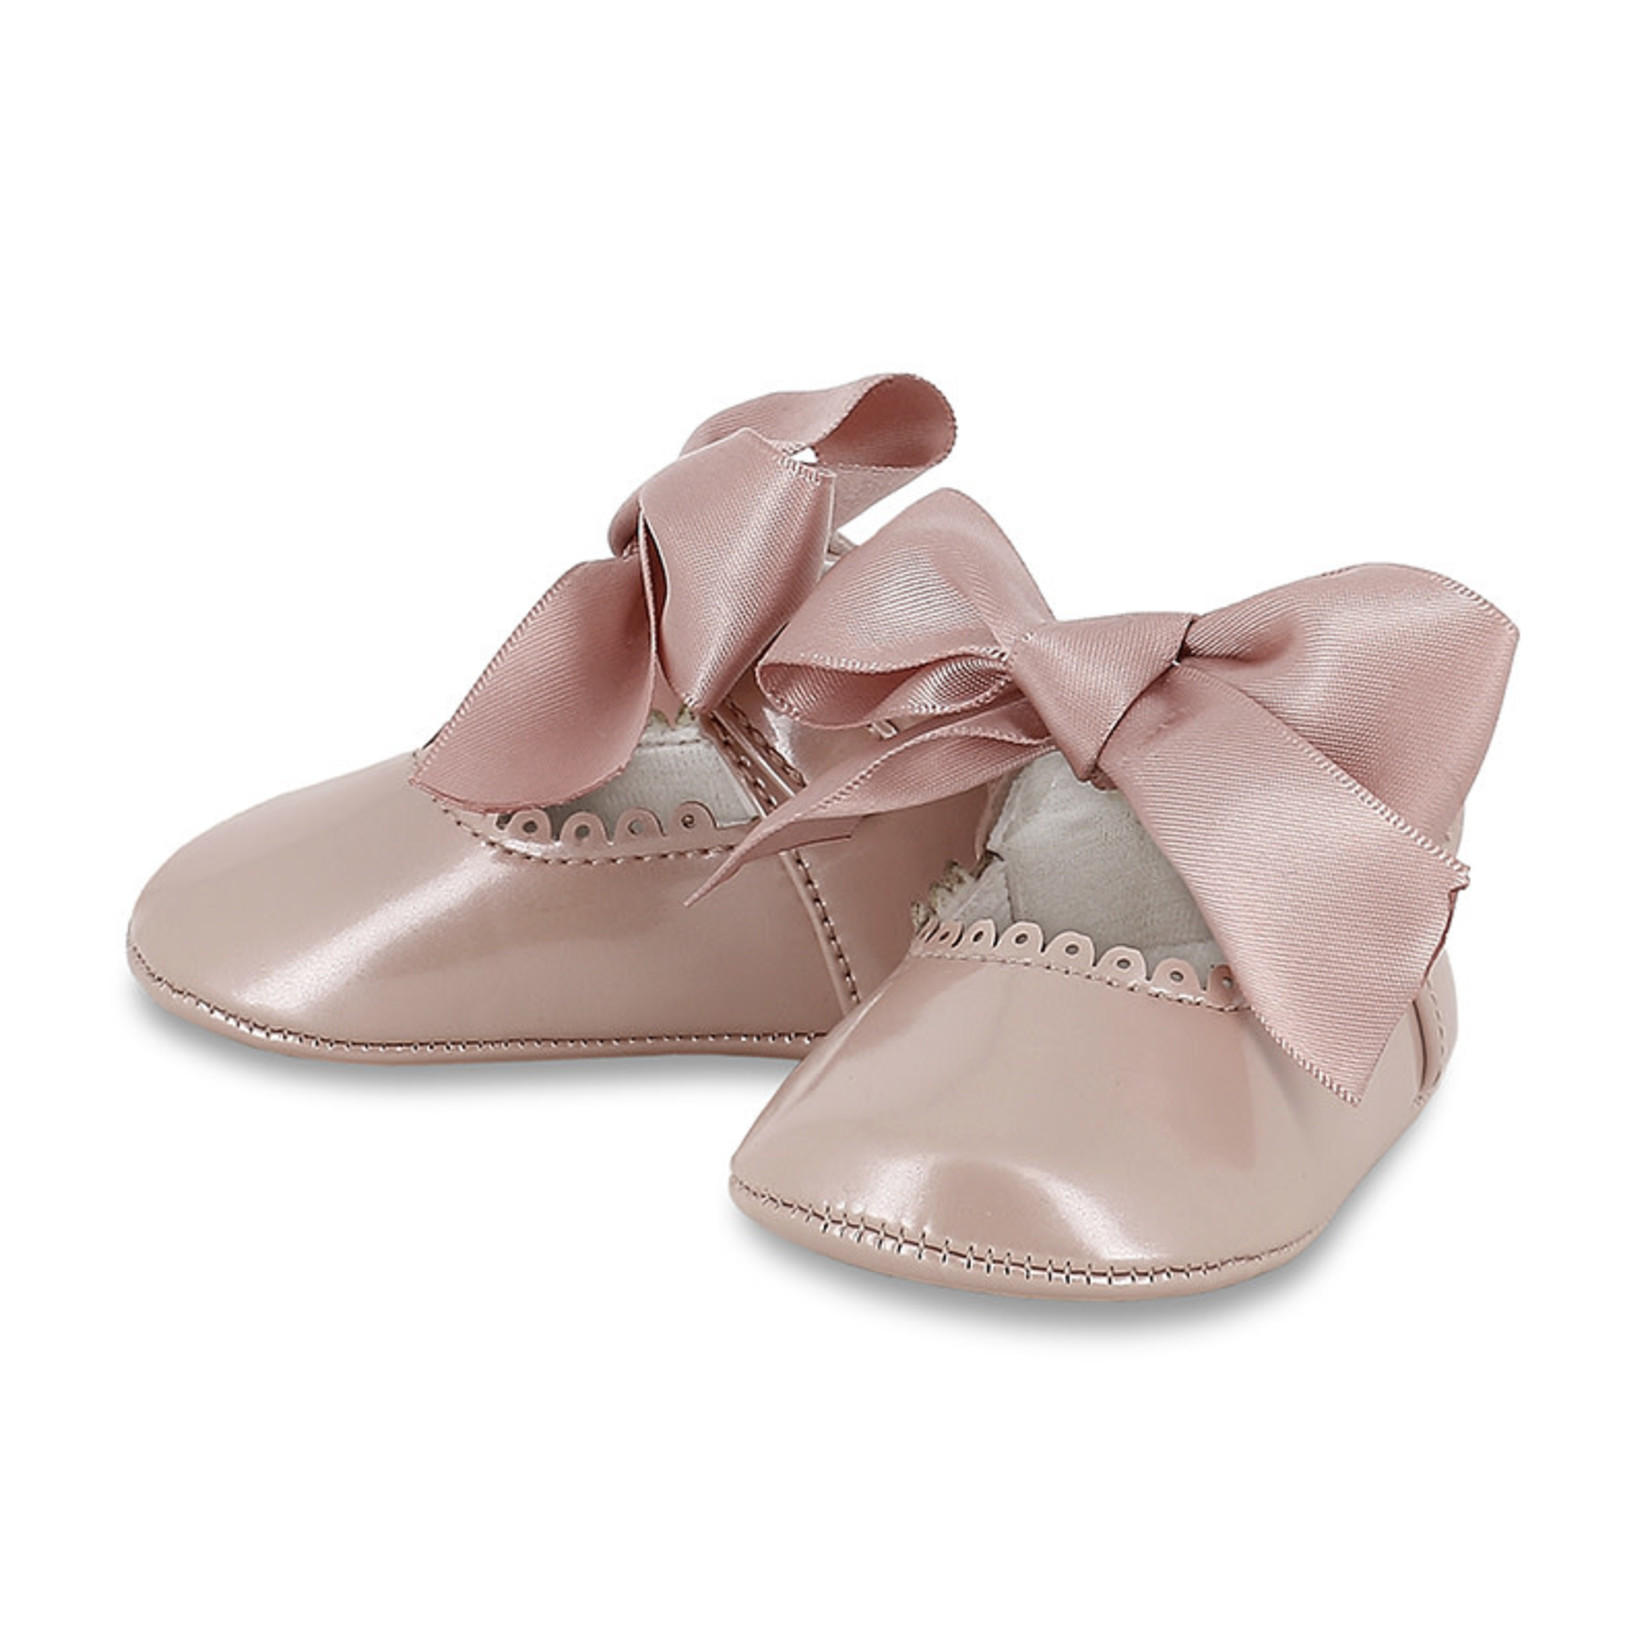 Mayoral Baby Shoe - Dusty Pink